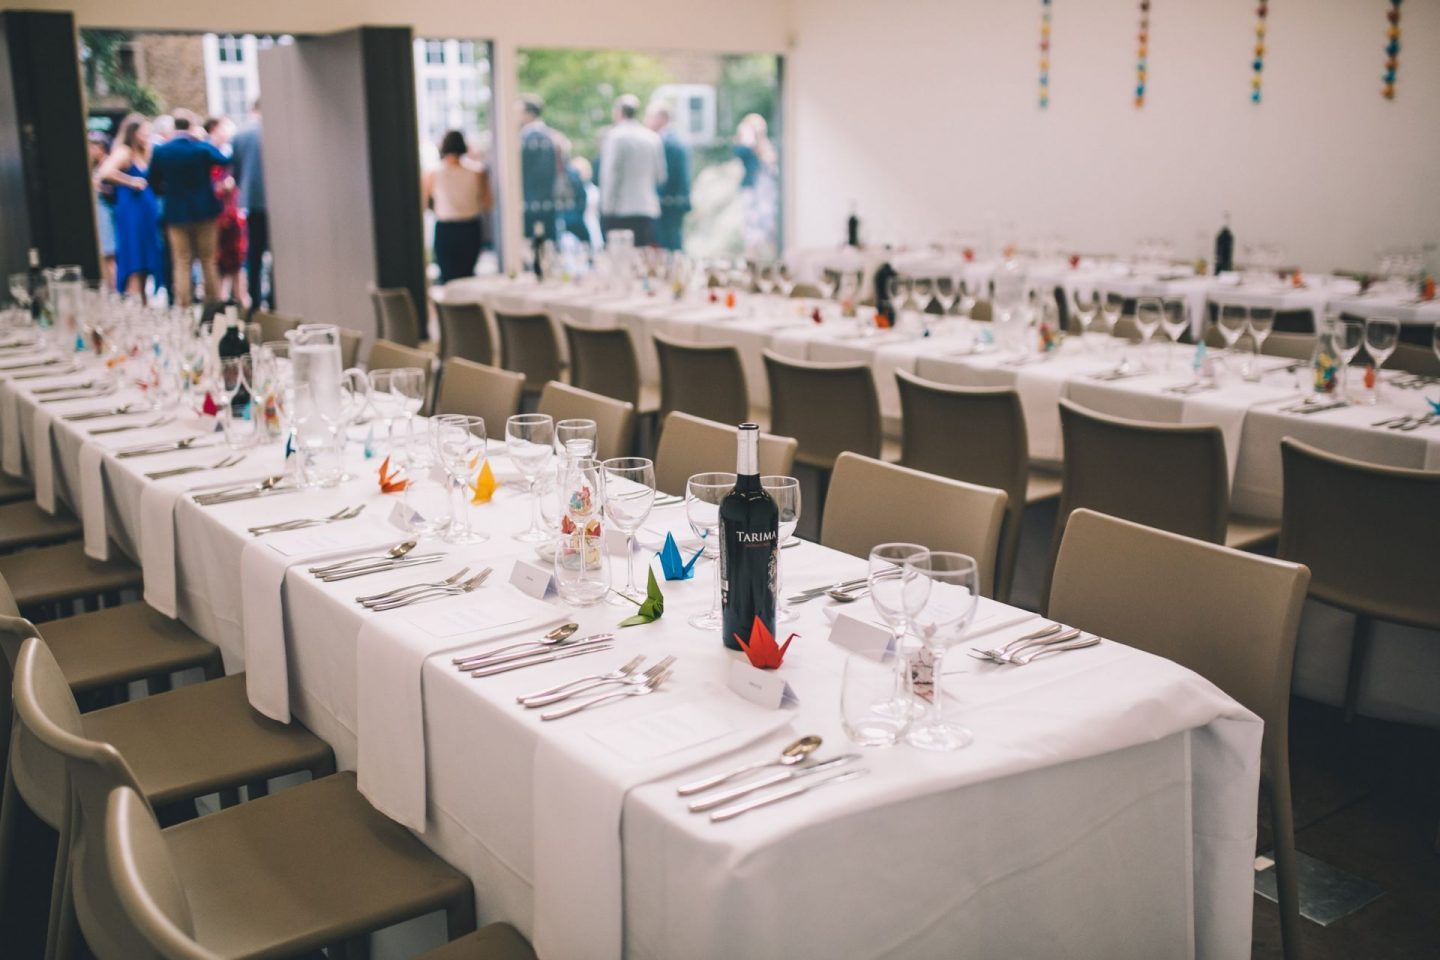 south london gallery wedding breakfast